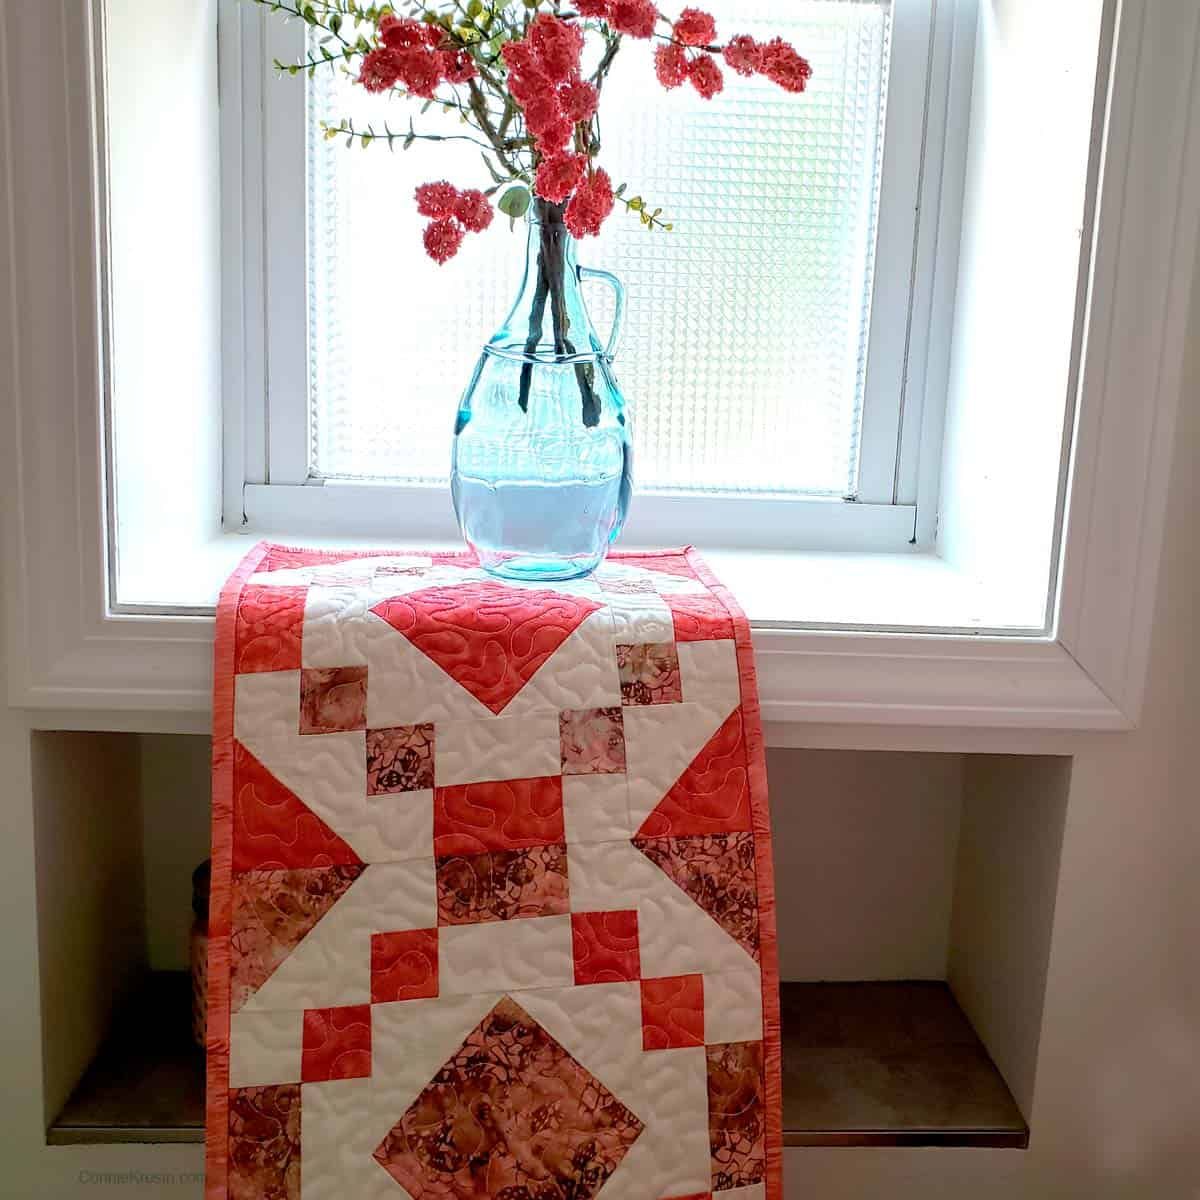 Table runner in the bathroom